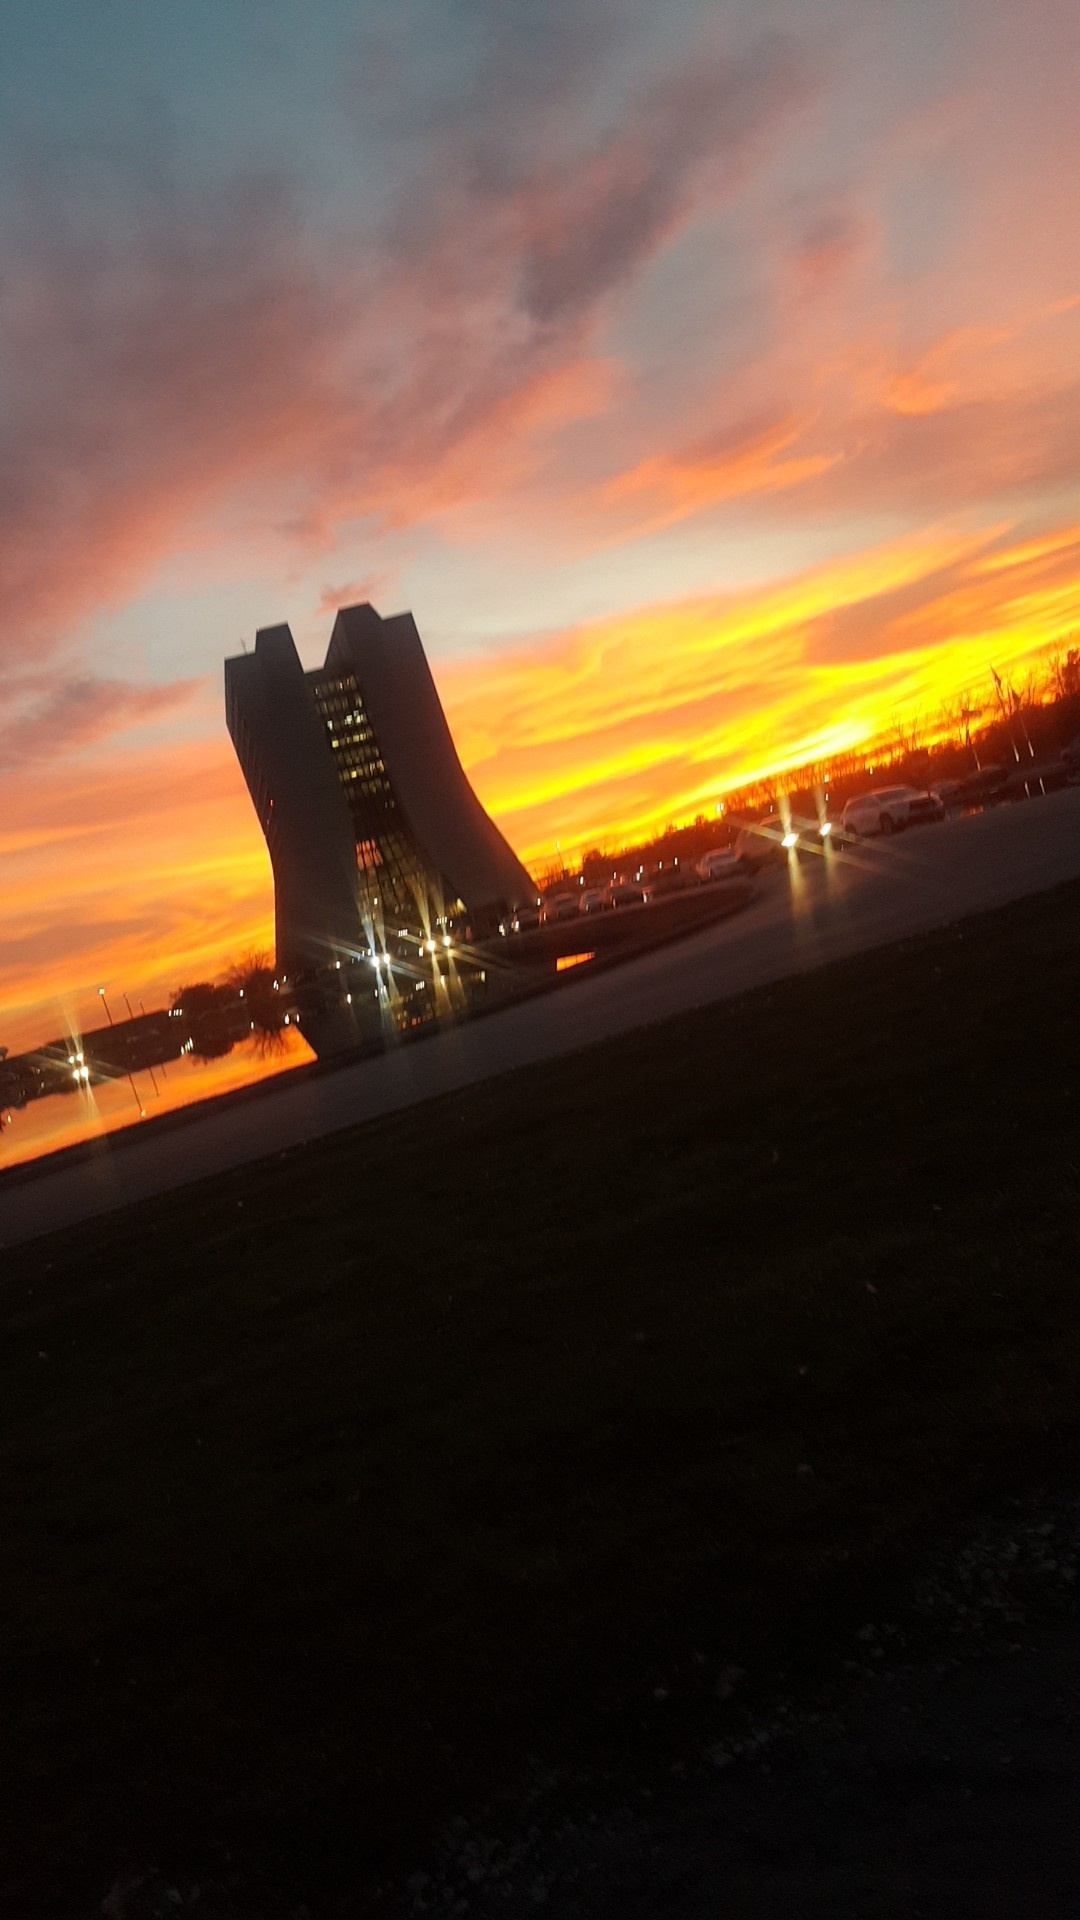 This was the Nov. 27 sunset at Wilson Hall. Photo: Kassandra Galvan, building, sunset, sky, Wilson Hall, landscape